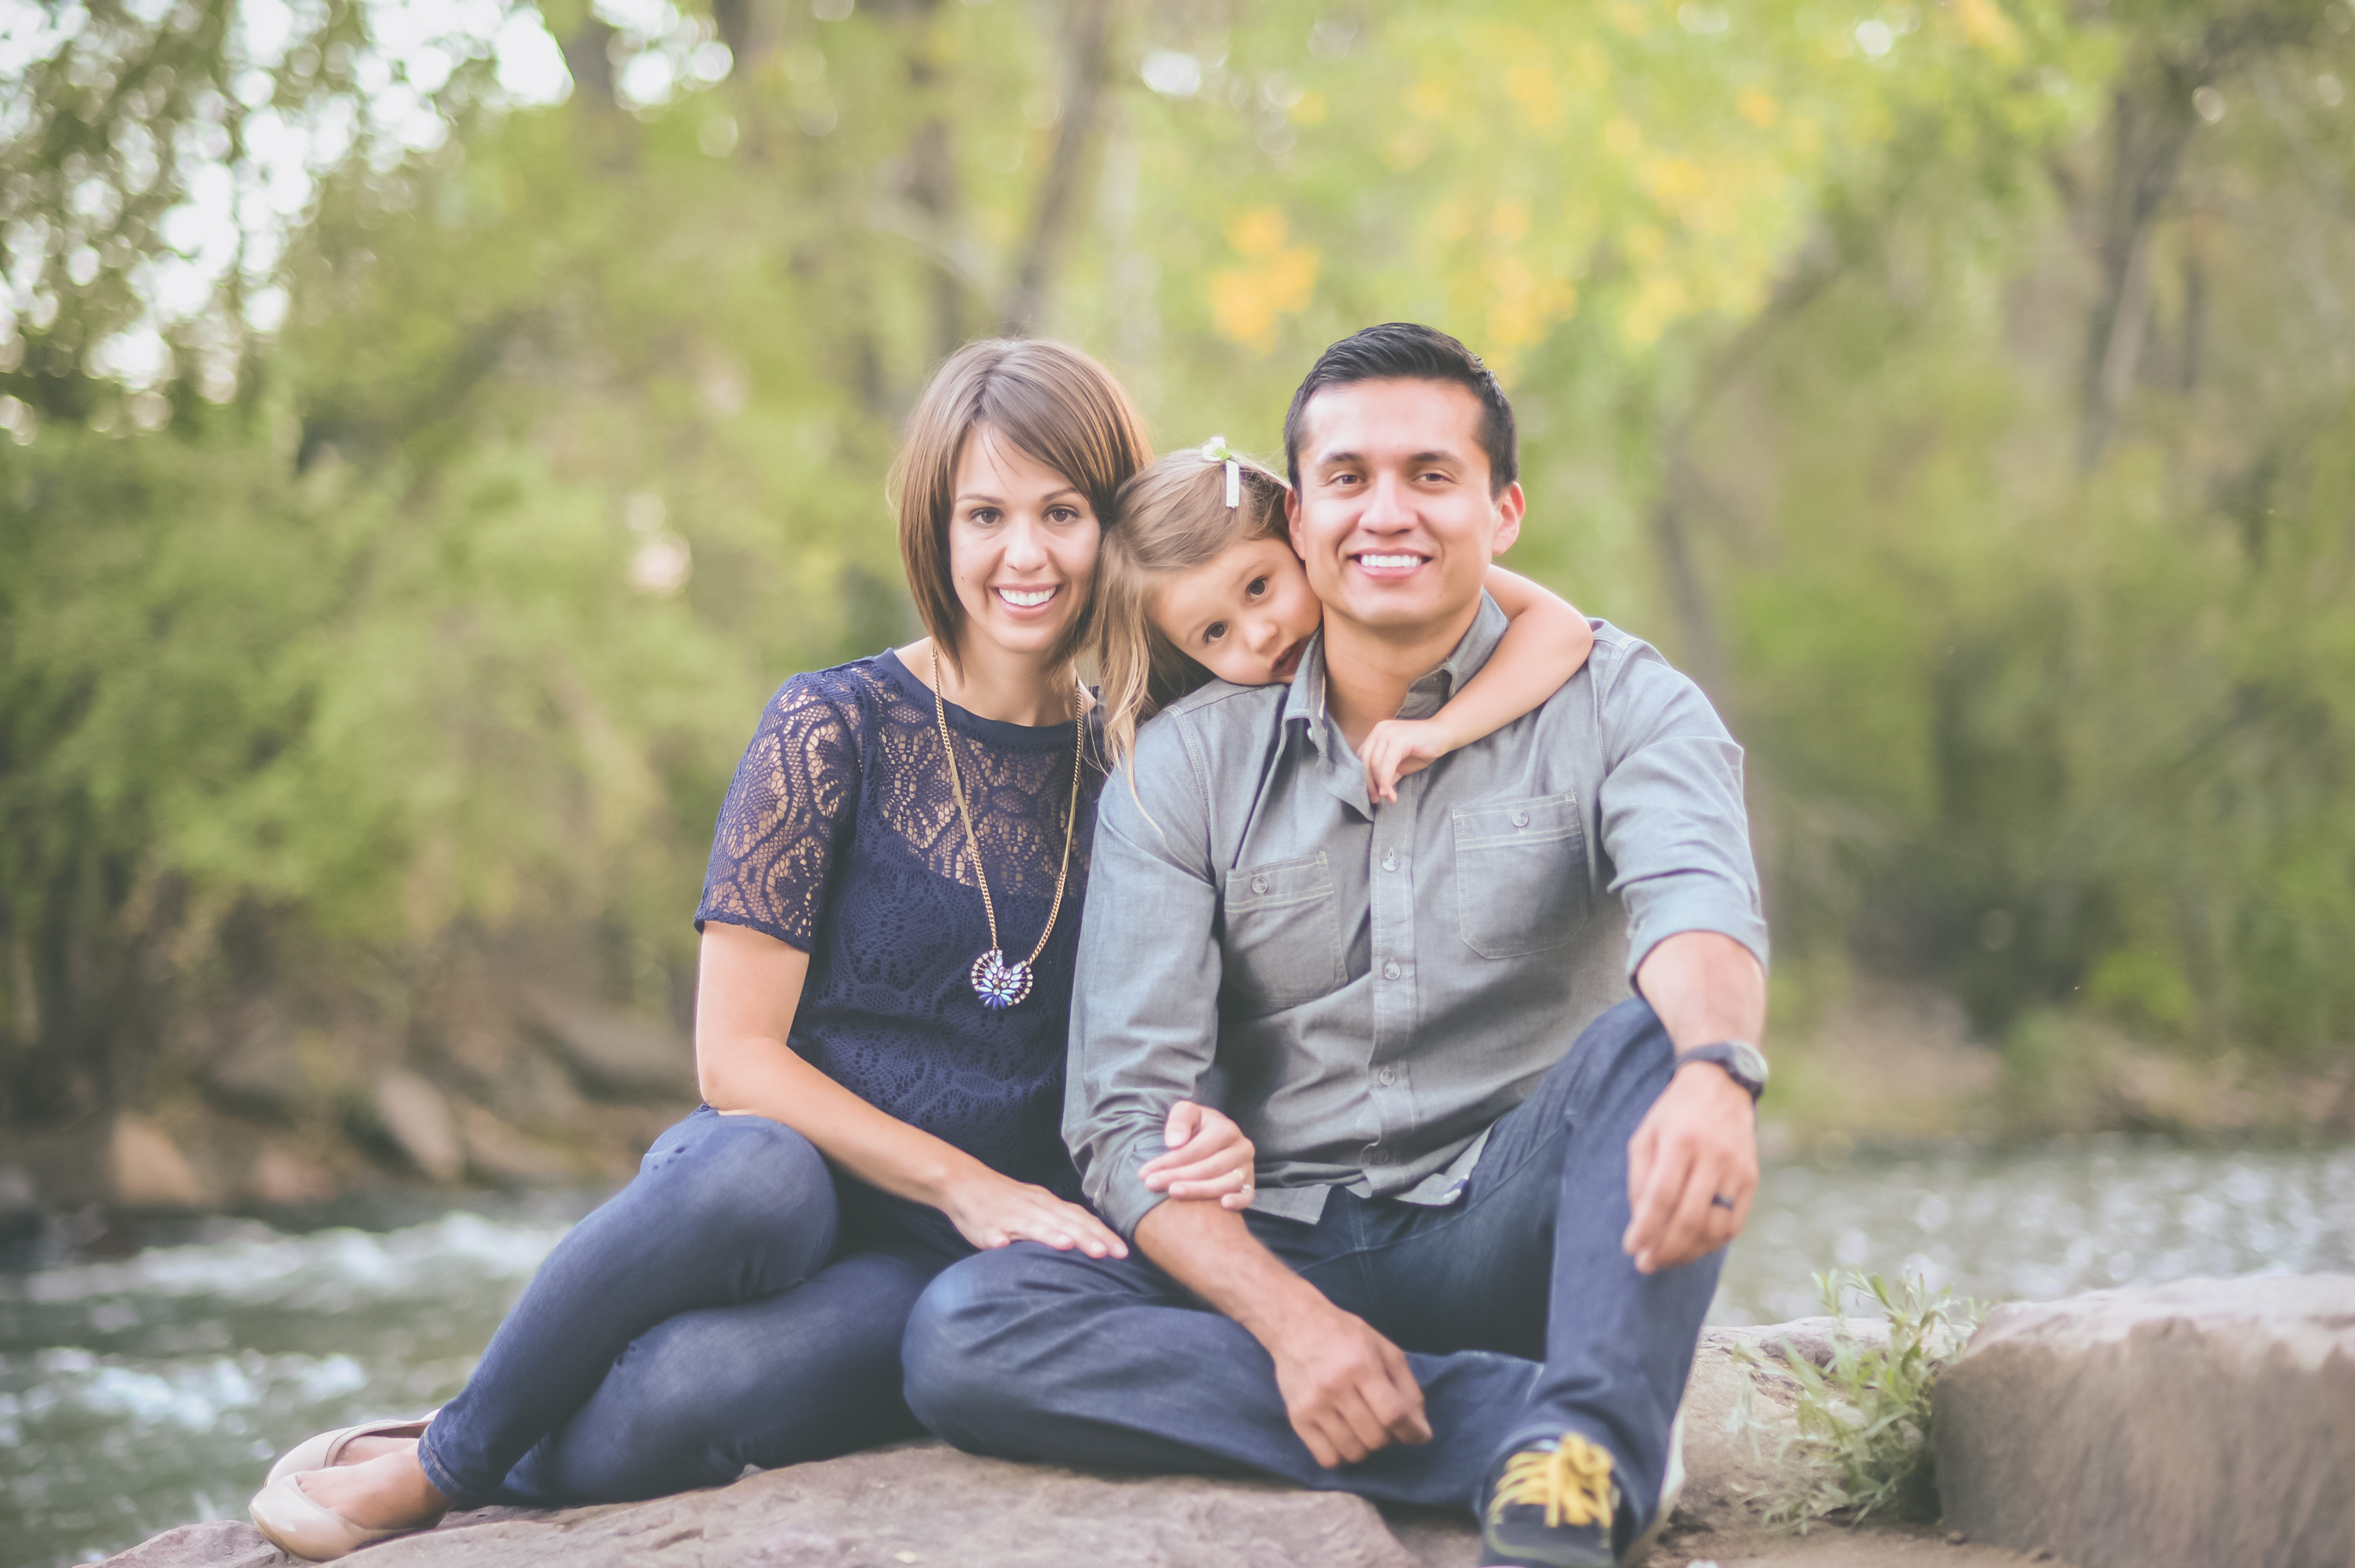 H Family Clear Creek, Sweetie Photo Lifestyle Portrait